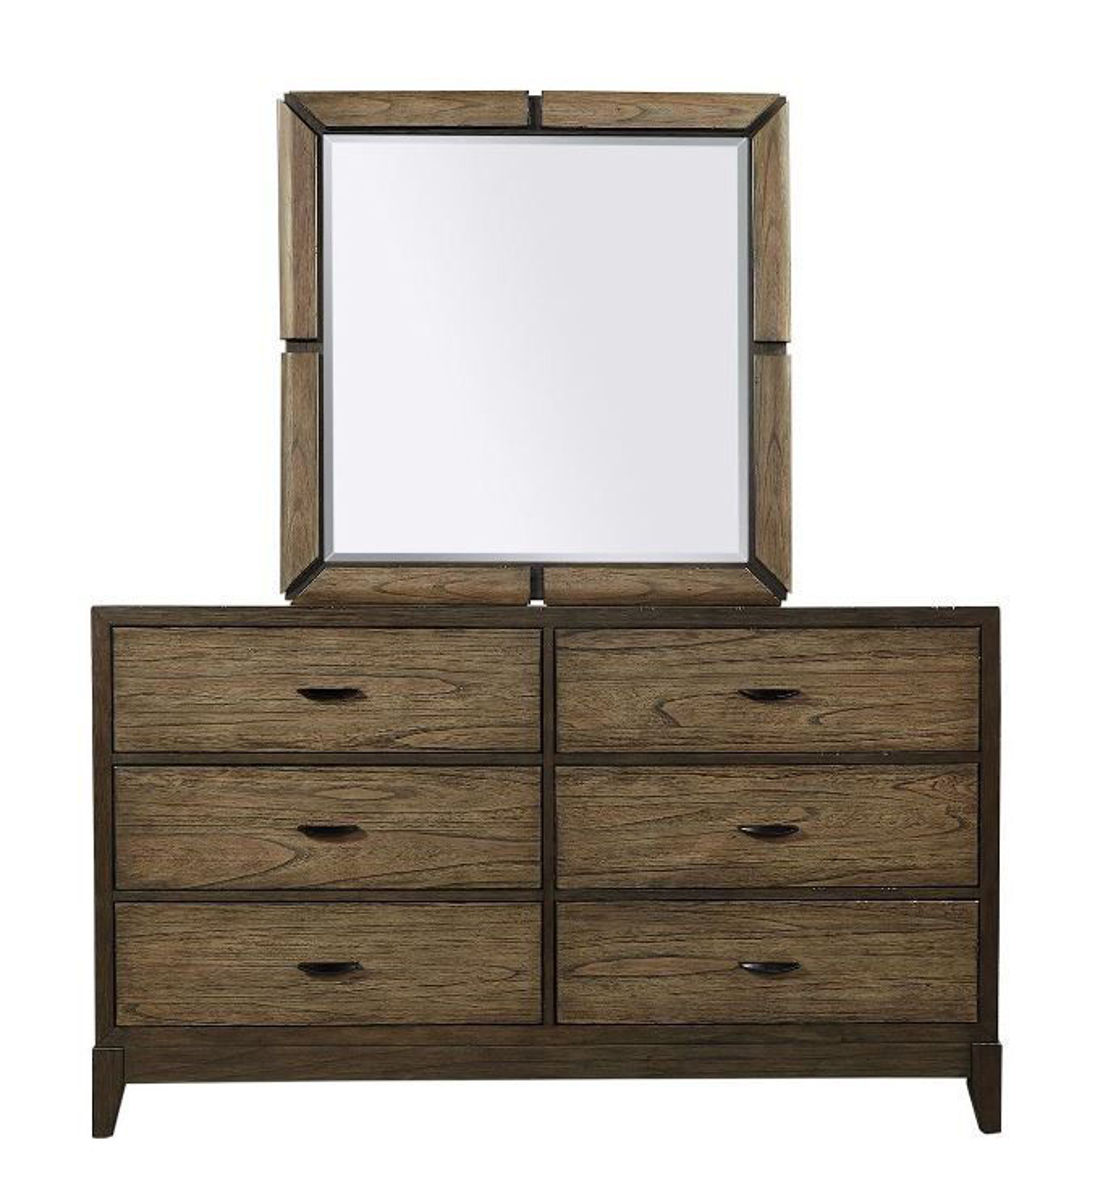 Picture of WESTLAKE MIRROR